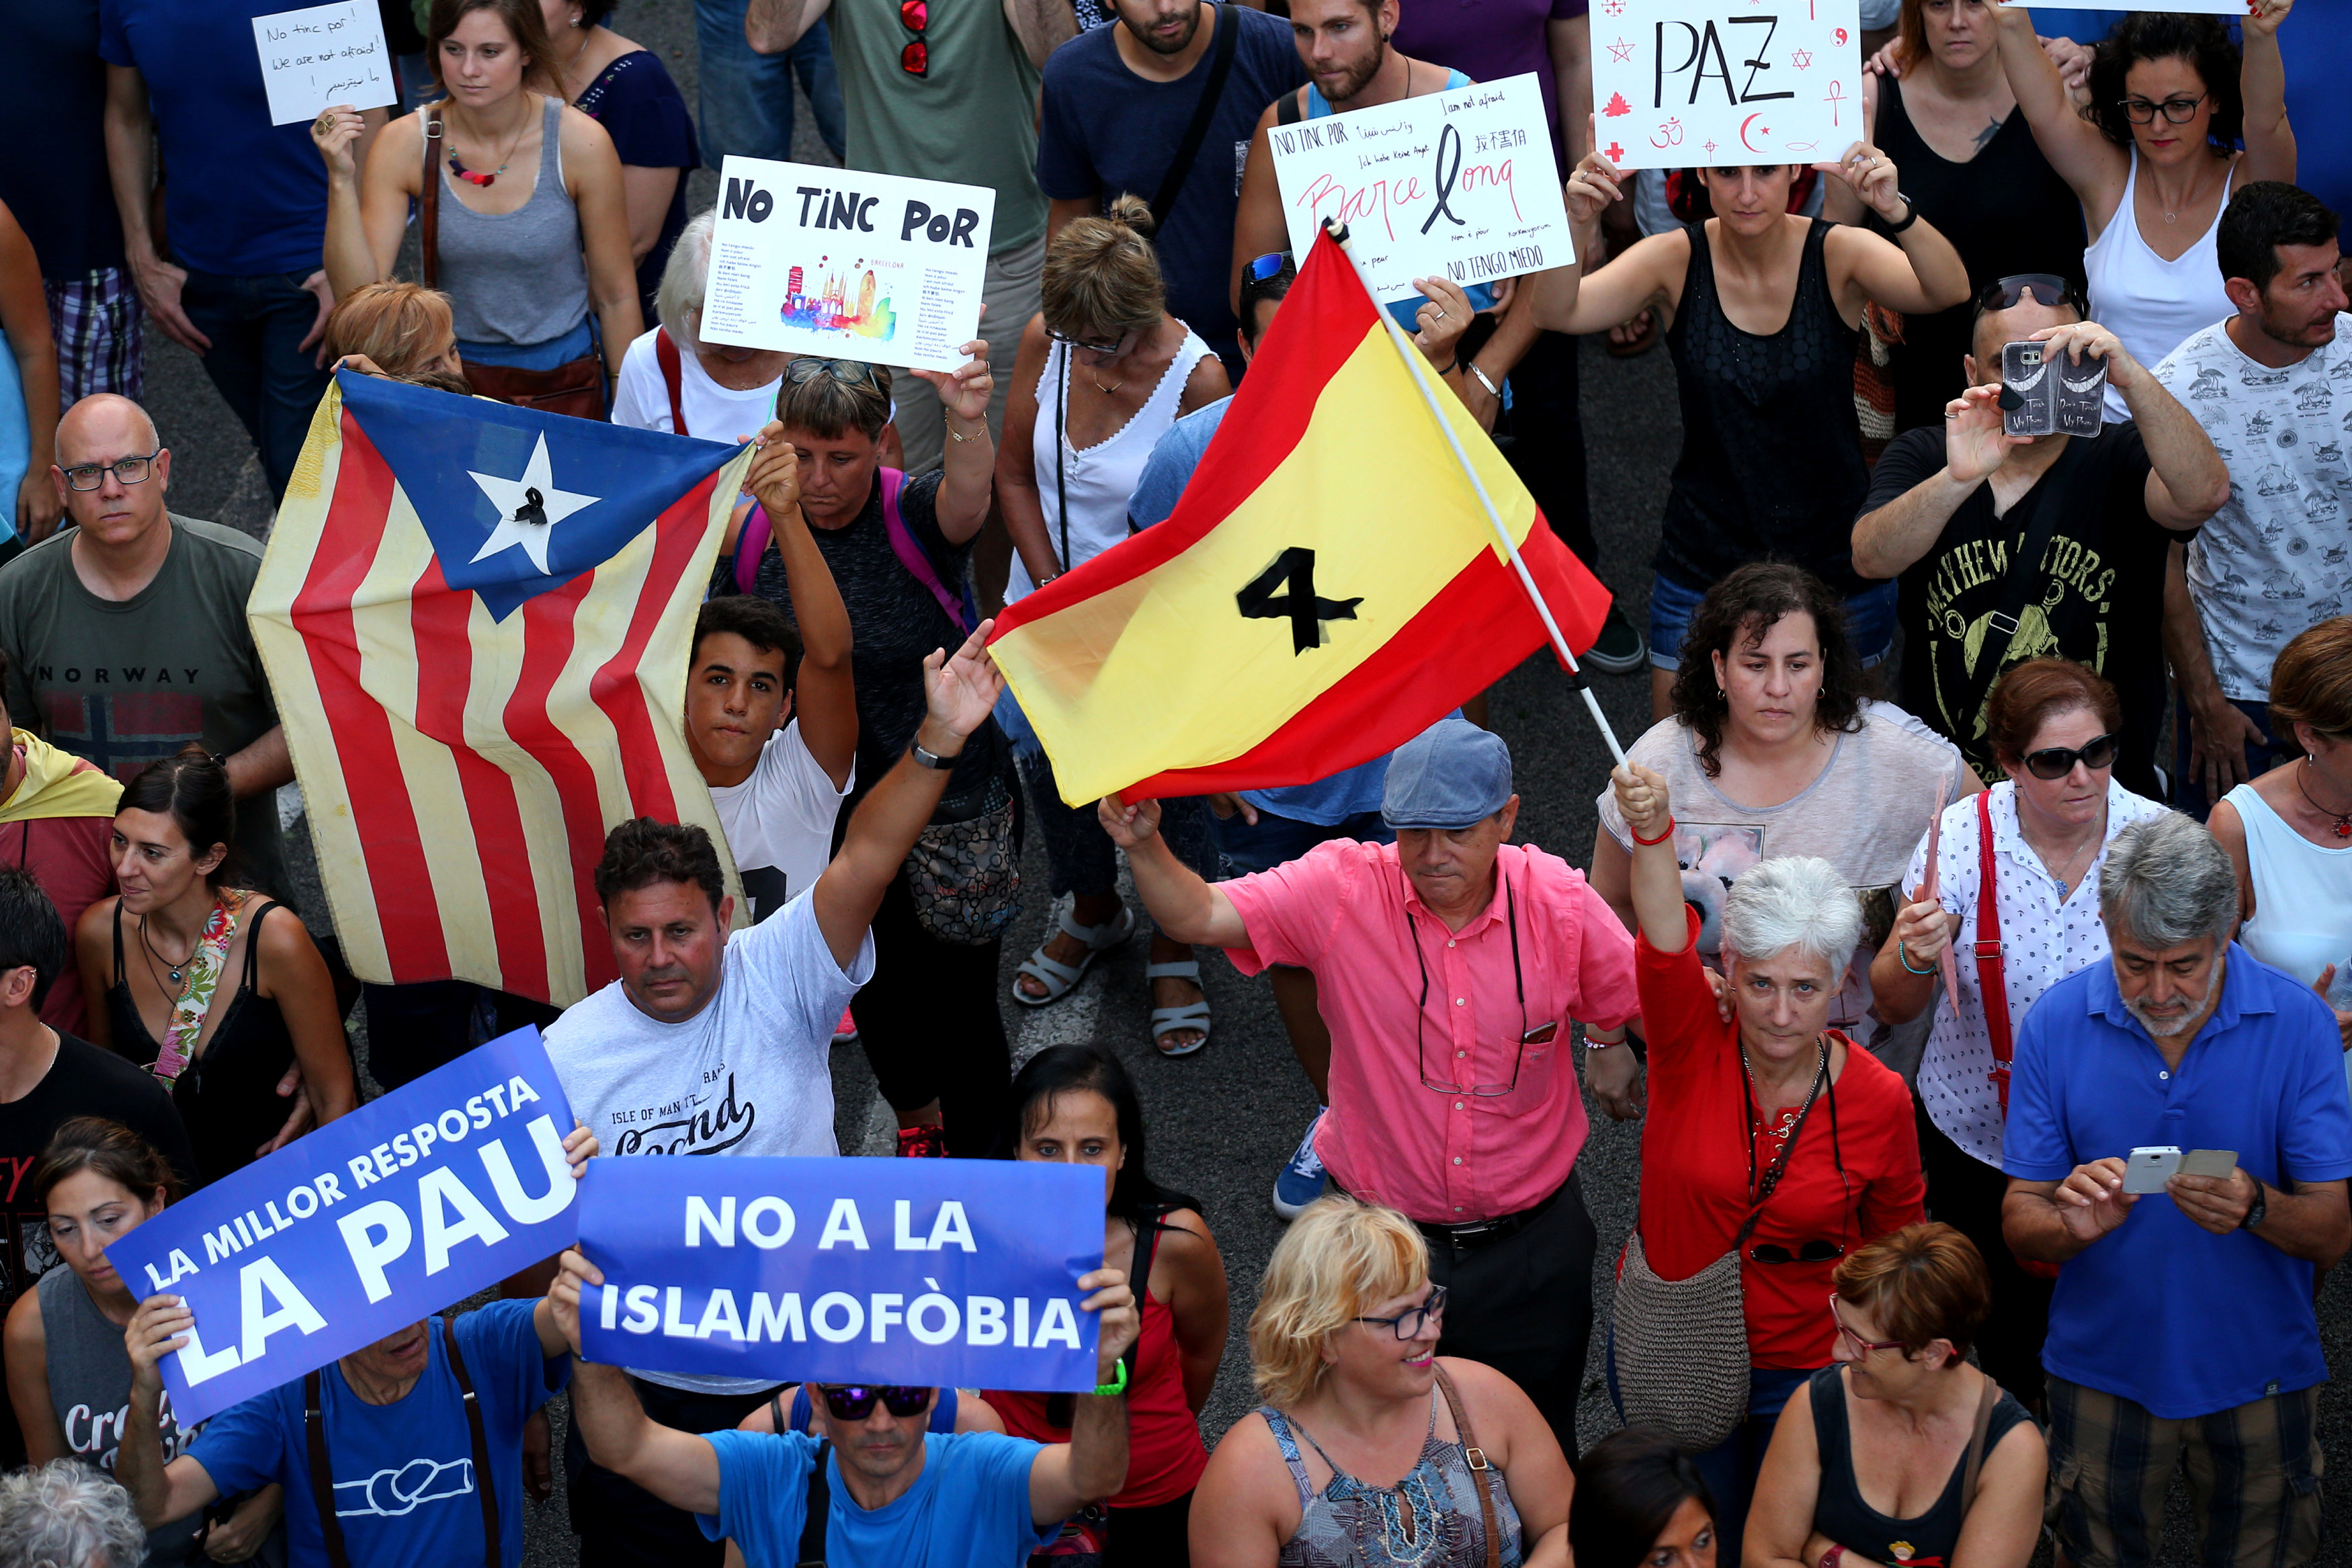 People hold signs and flags during a march of unity after the attacks last week, in Barcelona, Spain, August 26, 2017. REUTER